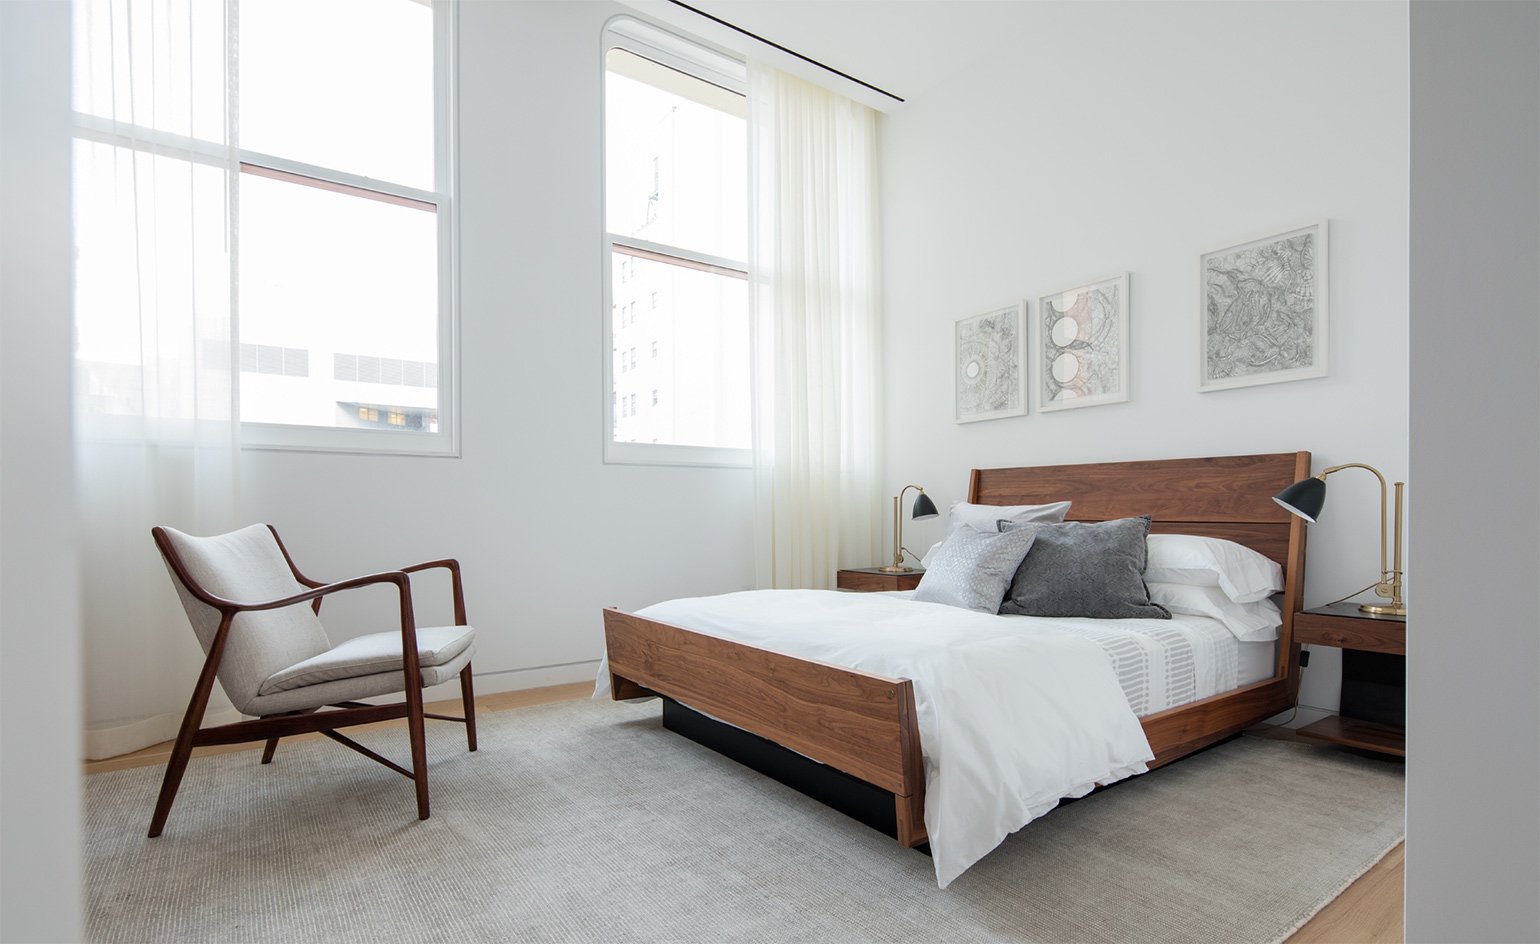 Vintage Pictured here in the second guest room a queen sized bed in walnut and a Finn Juhl Frame Chair